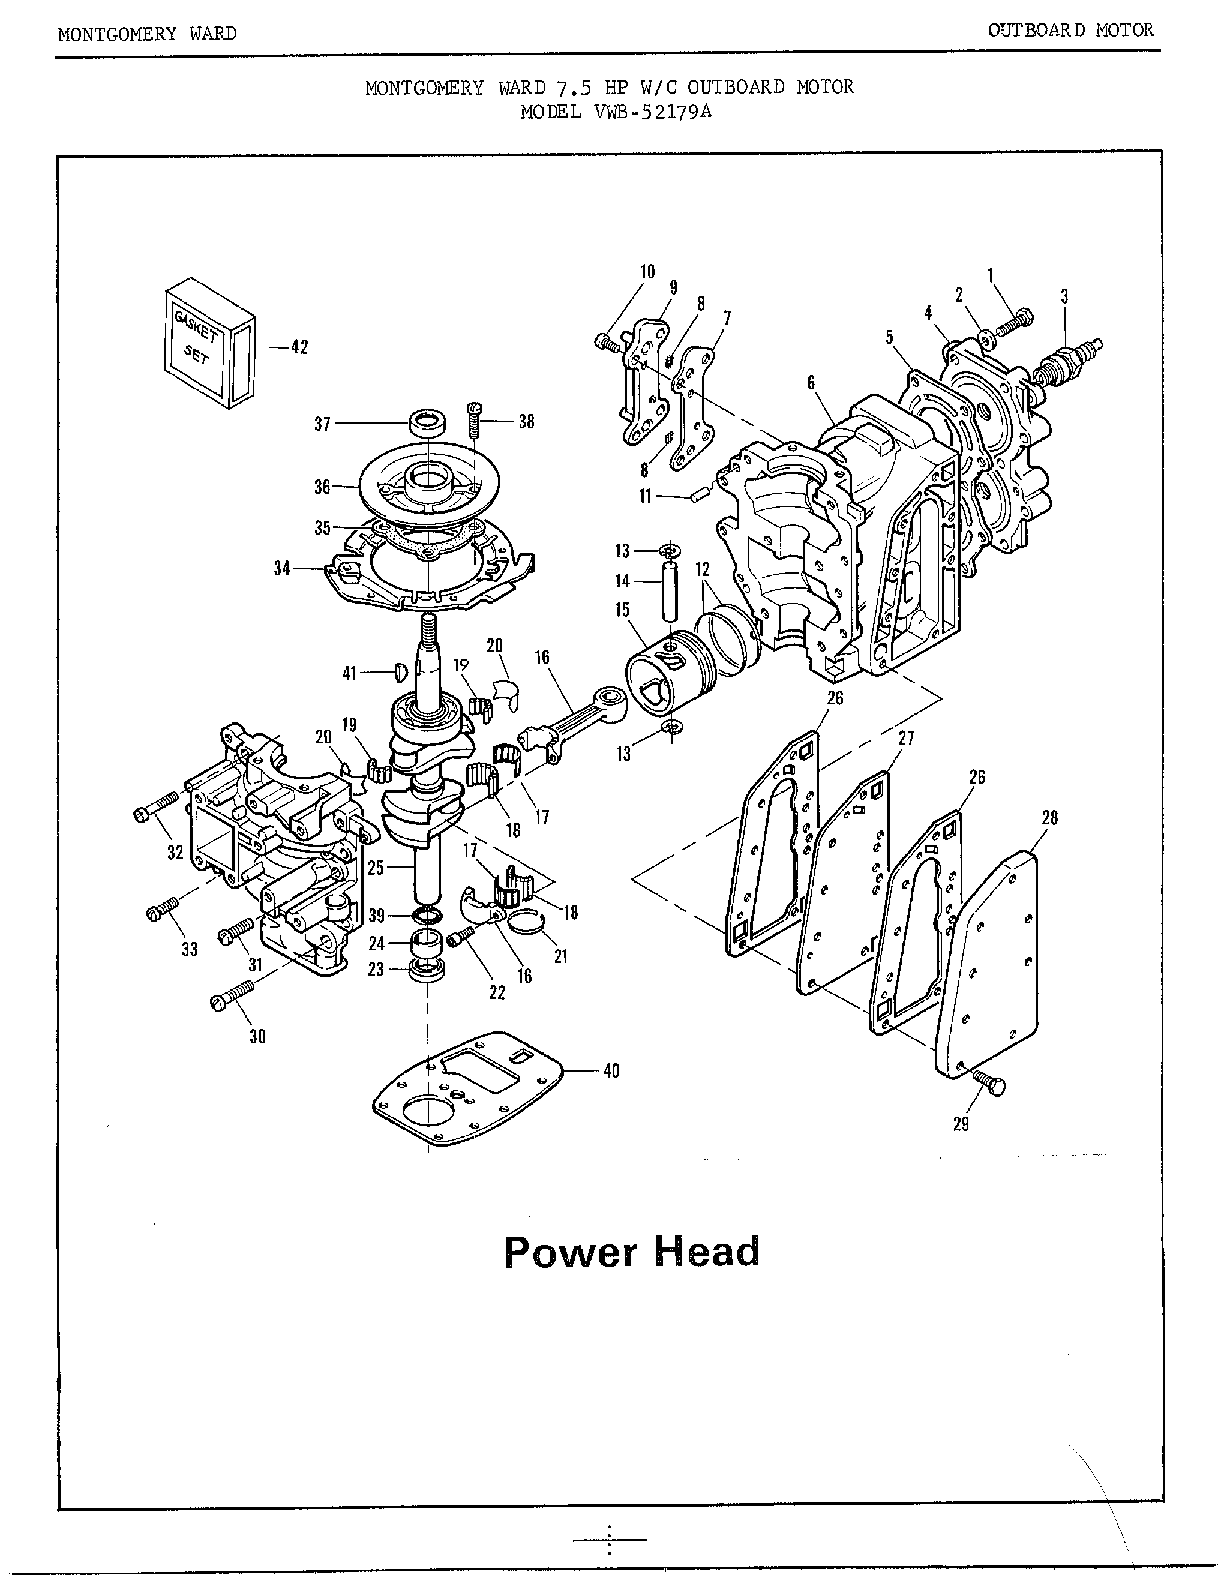 5hp outboard motor power head diagram and parts list for mercury all